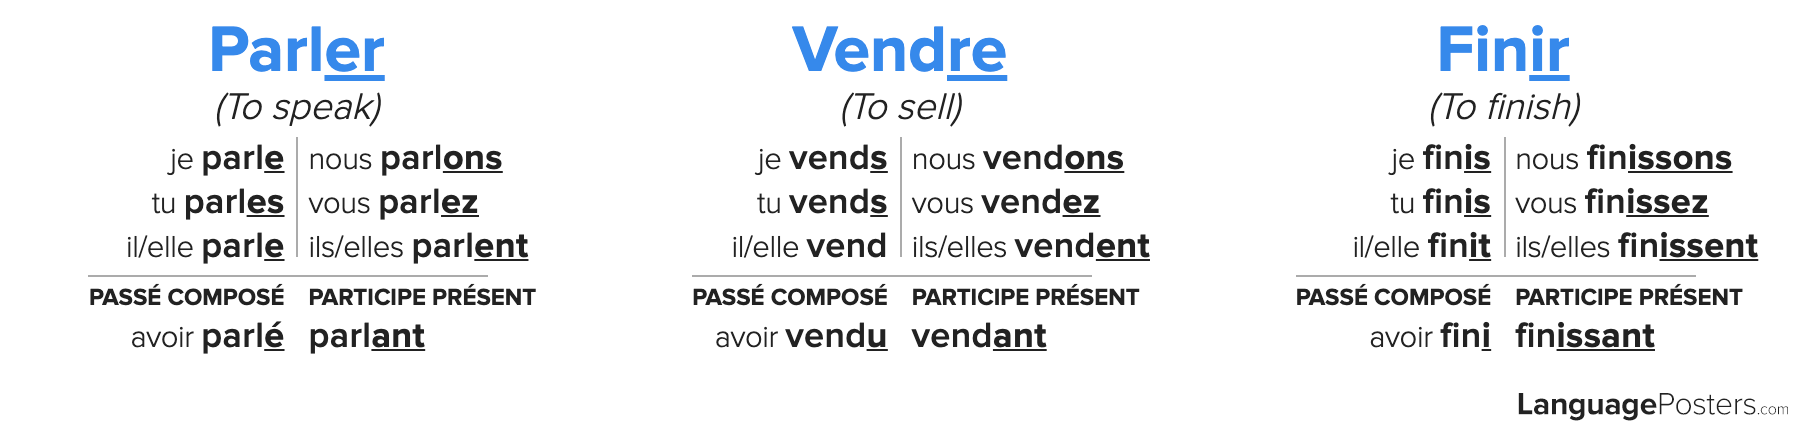 French Regular Verb Conjugation Chart